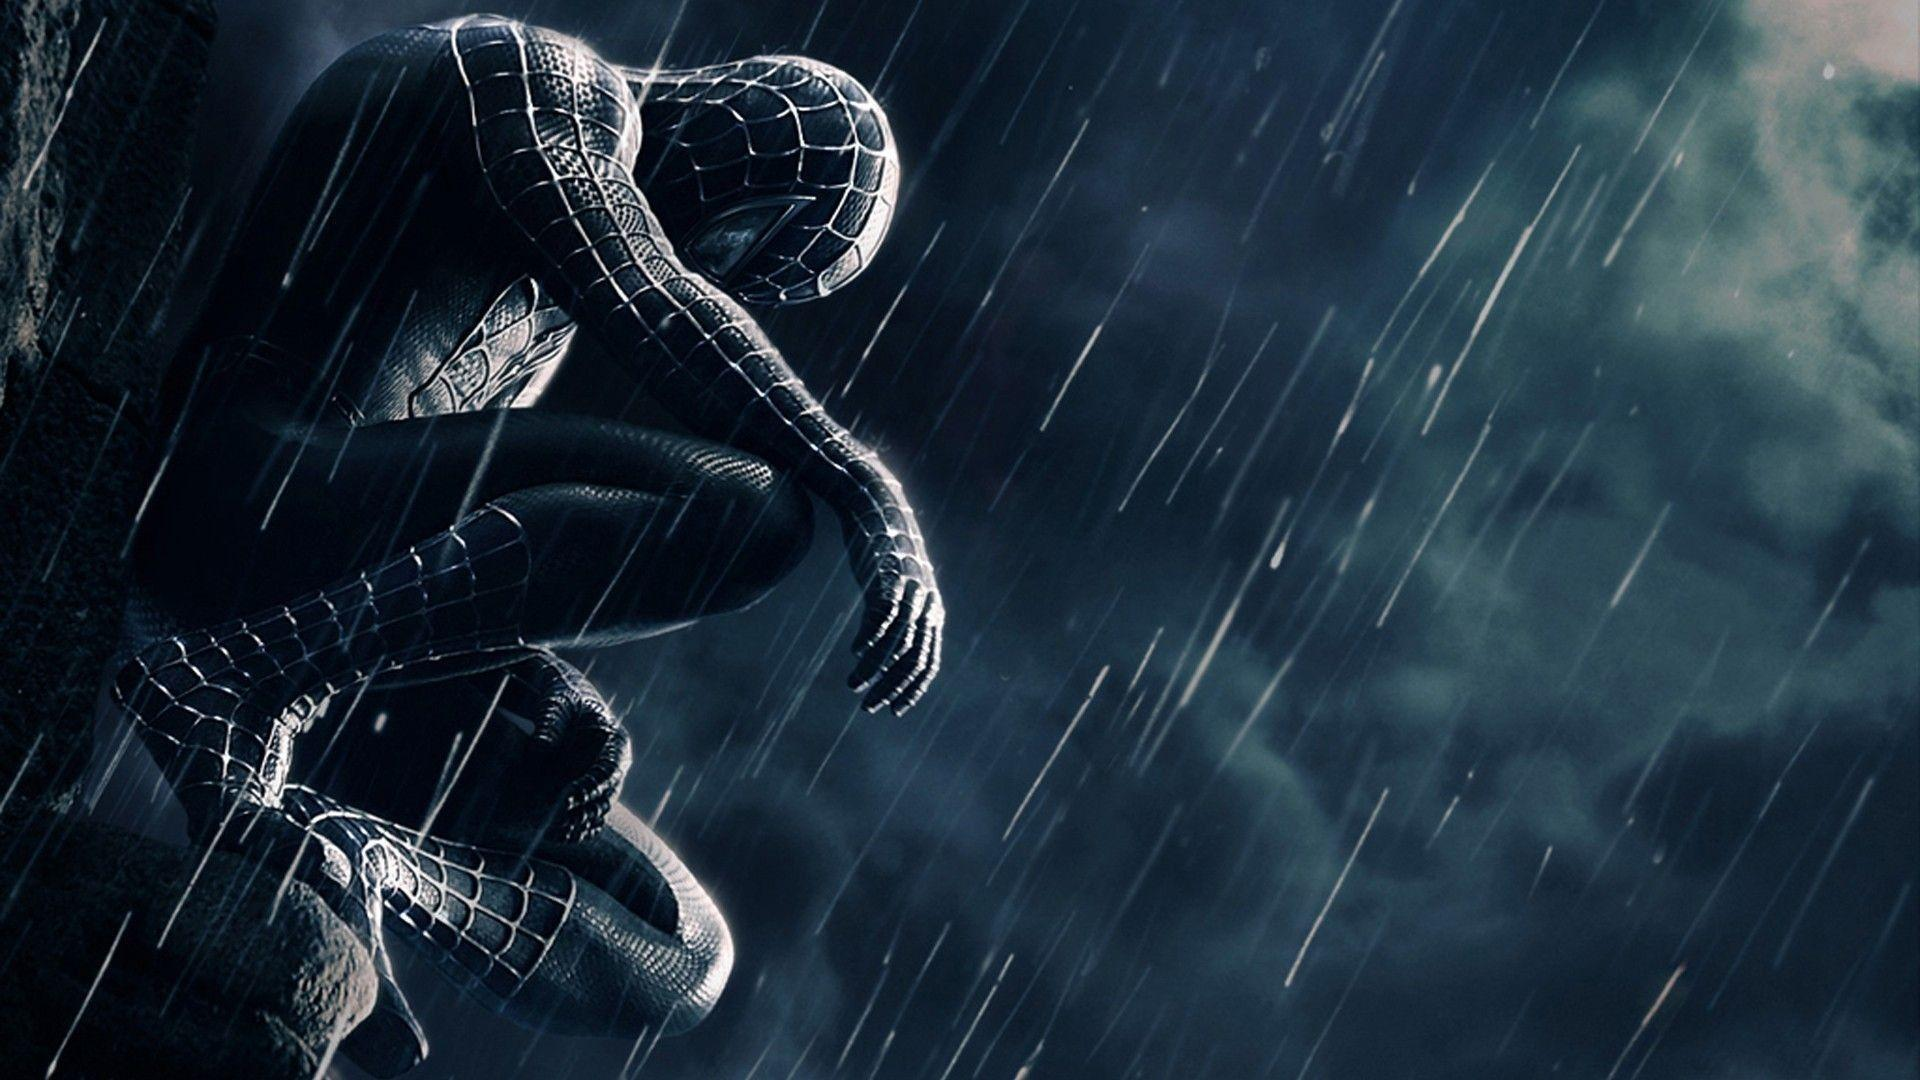 Pictures of Spiderman Wallpapers